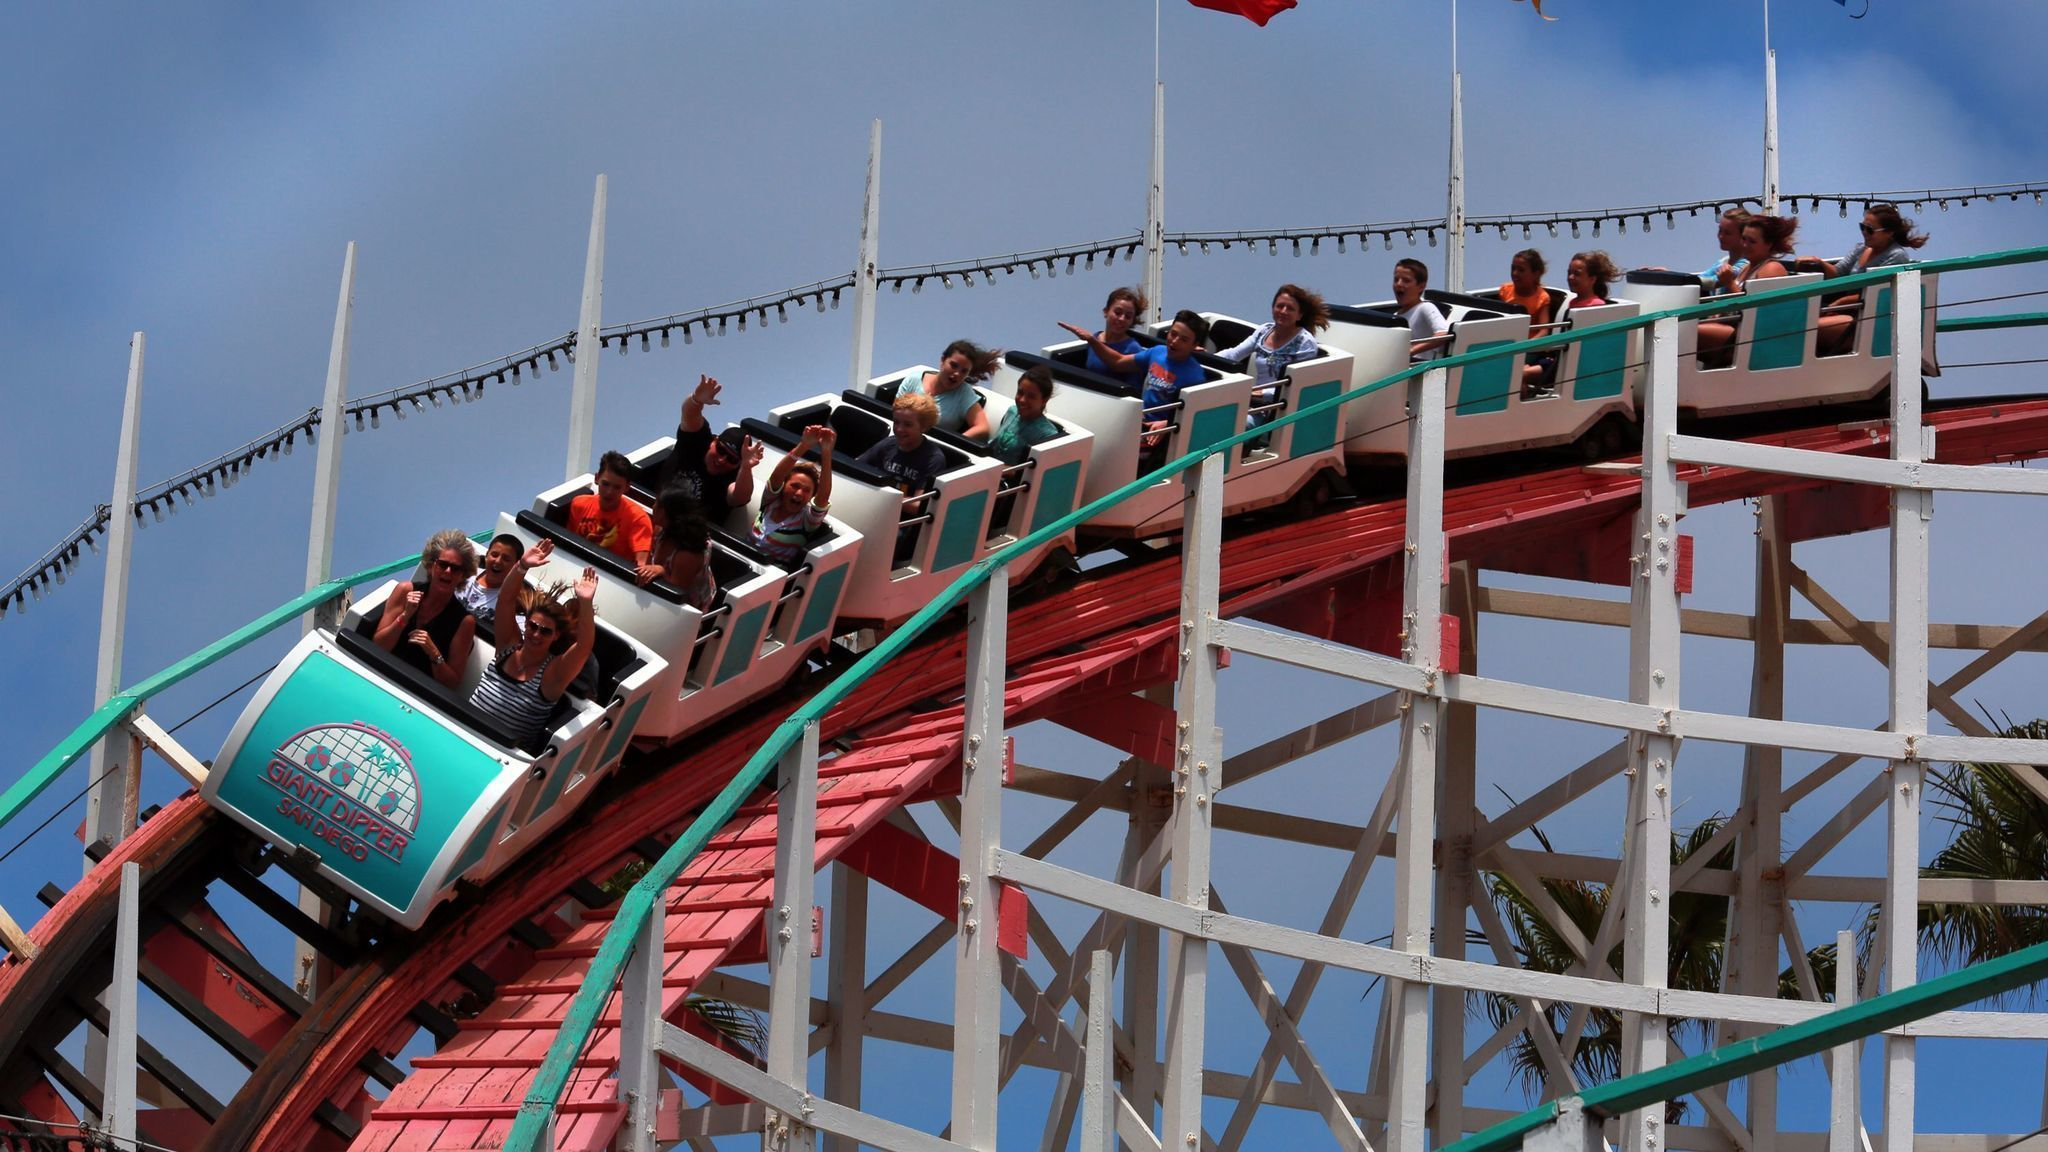 Mission Beach Small Lots Roller Coaster The San Go Union Tribune